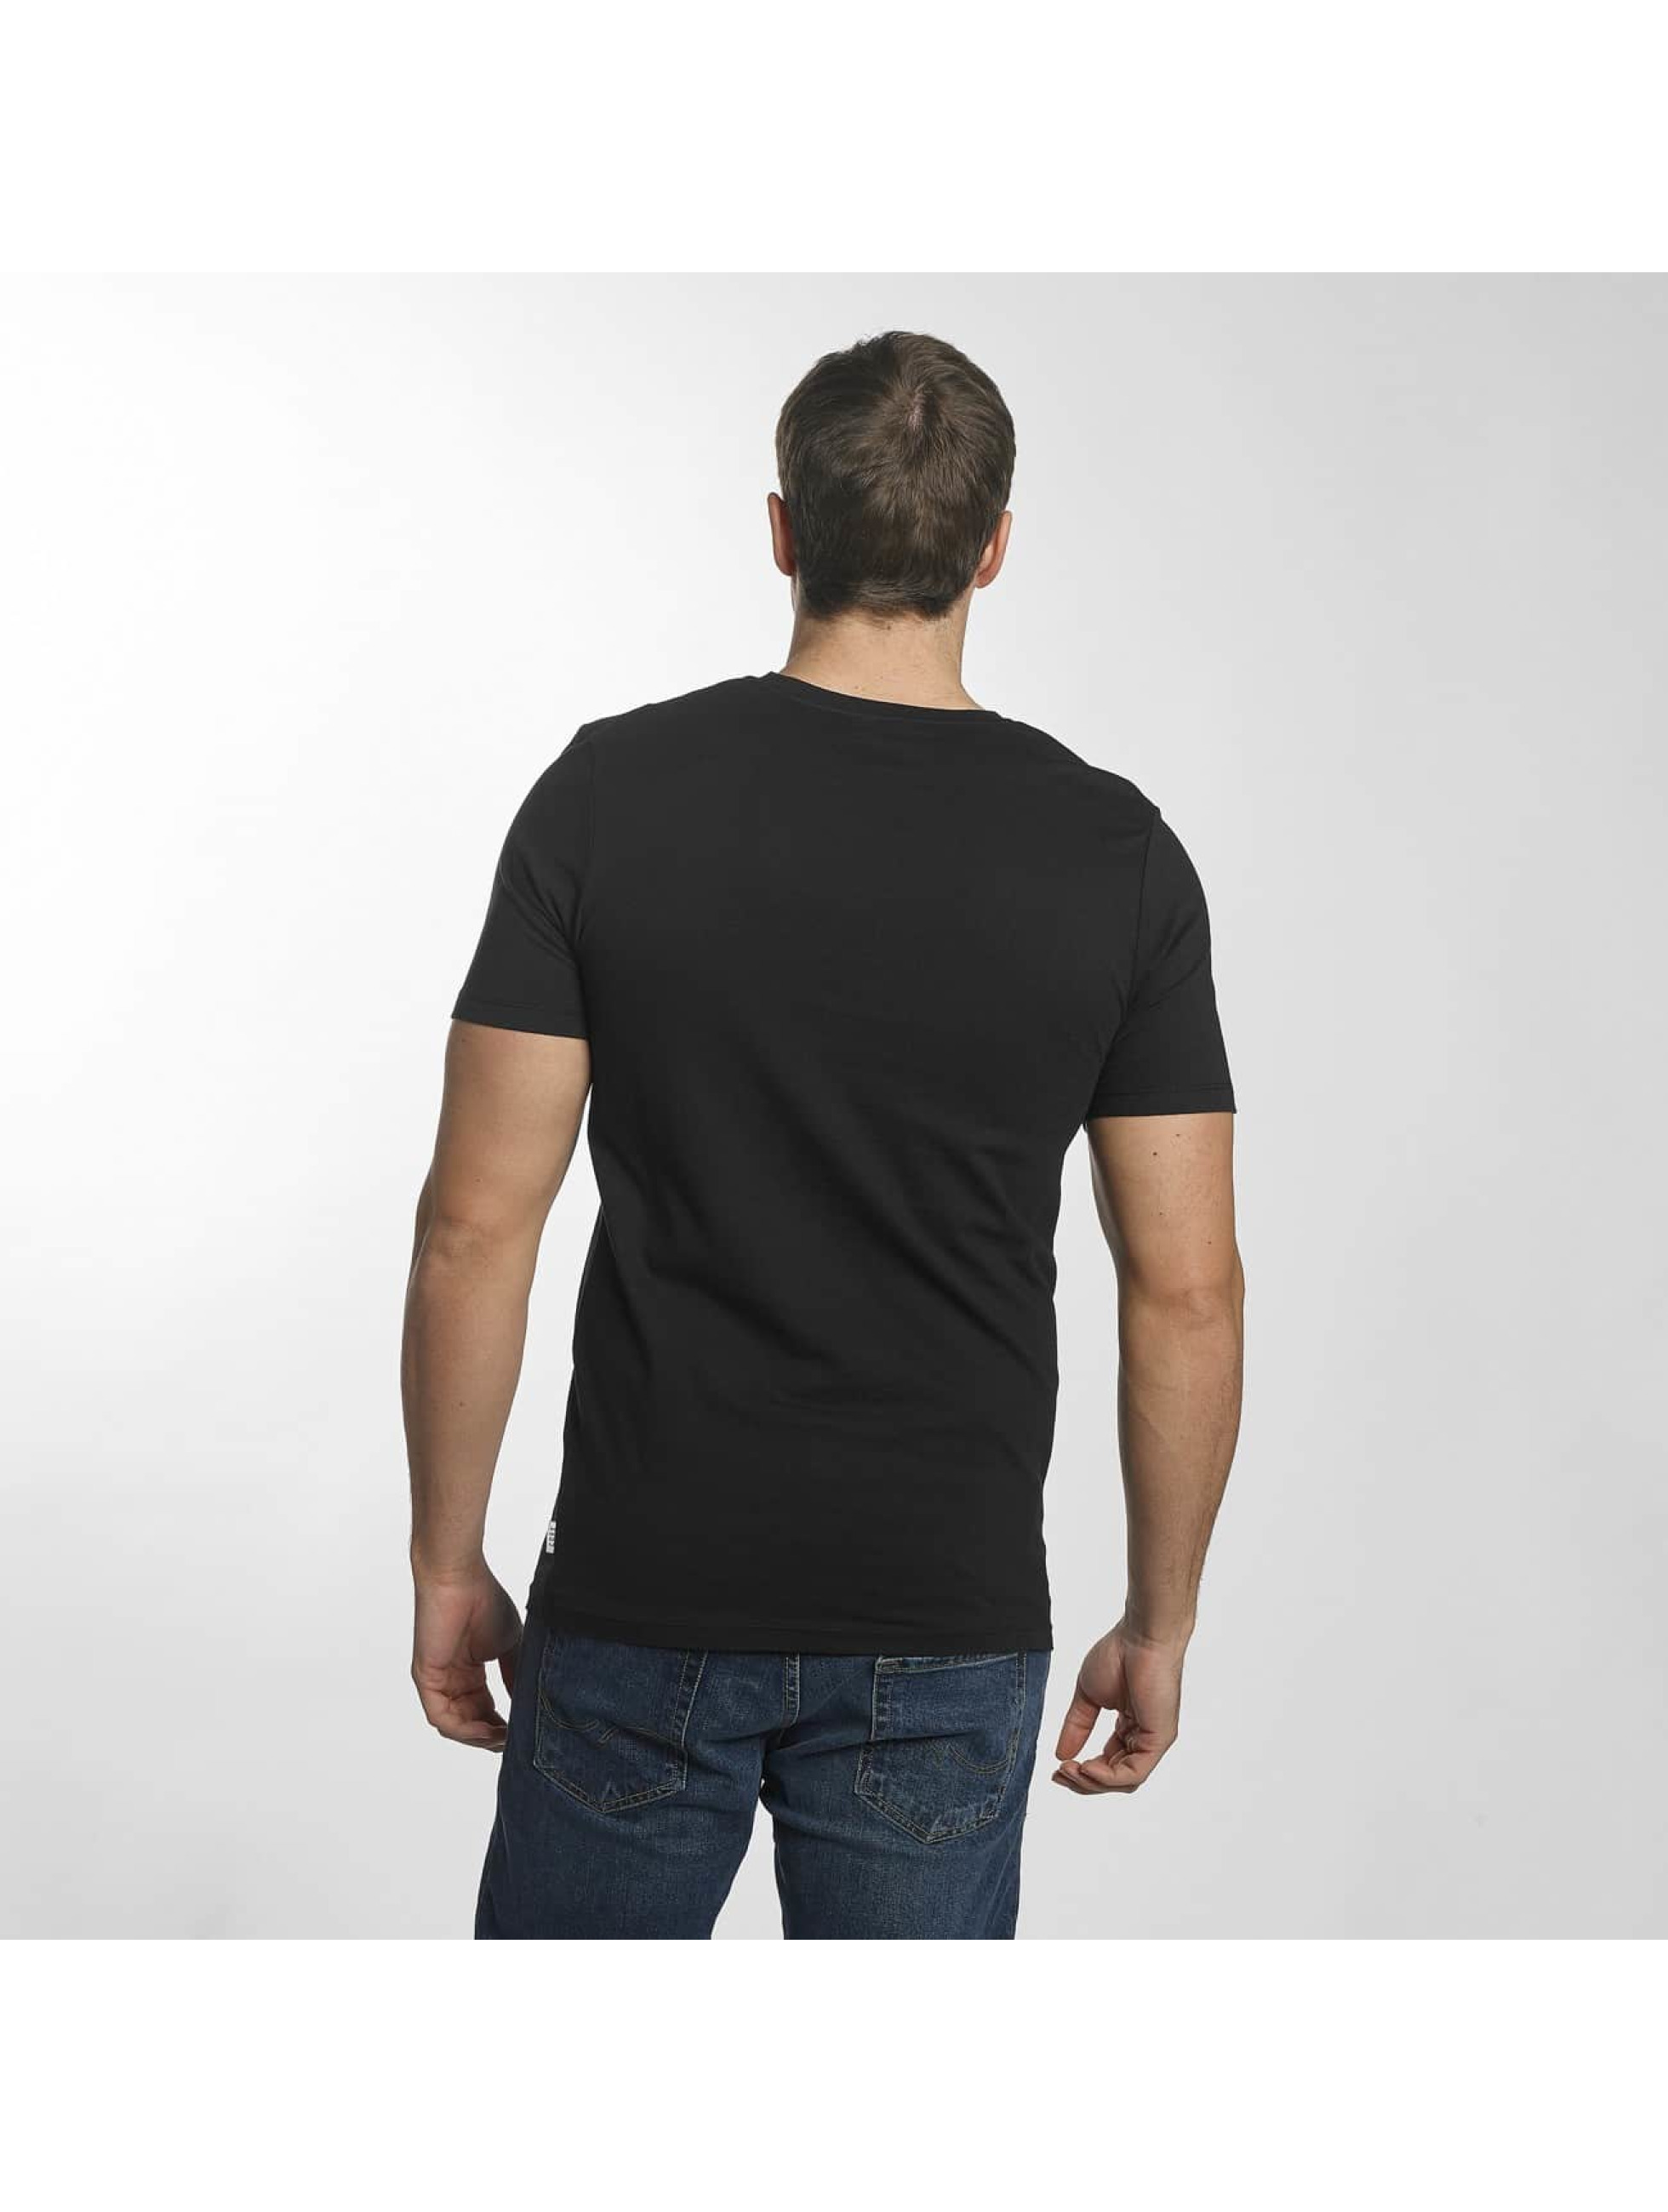 Jack & Jones T-Shirt jcoFly schwarz